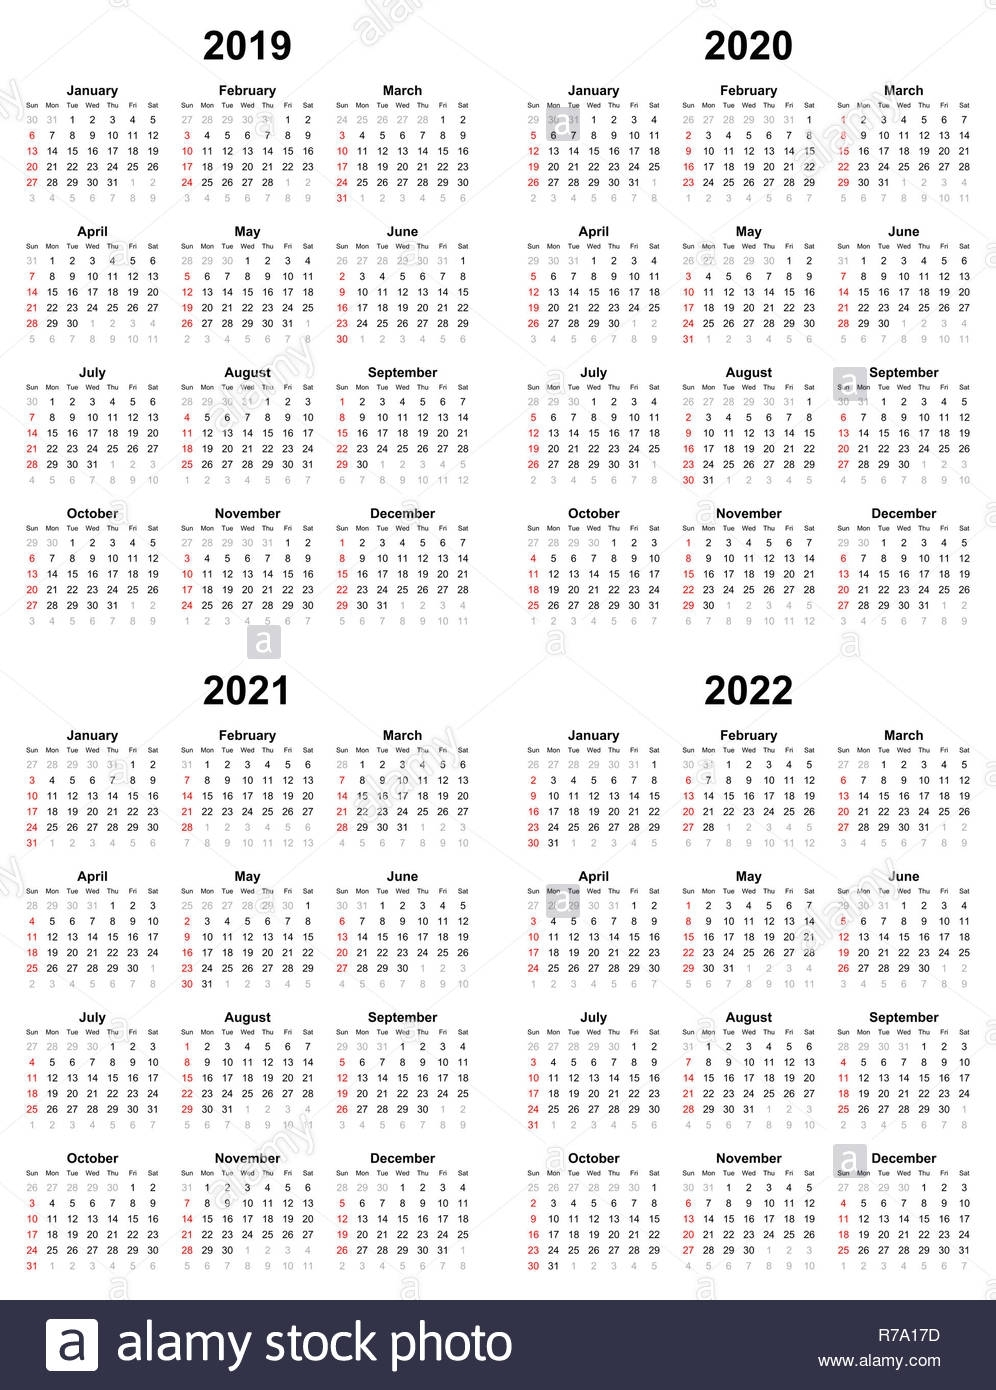 Calendario Juliano 2020 - Fora.educateidaho